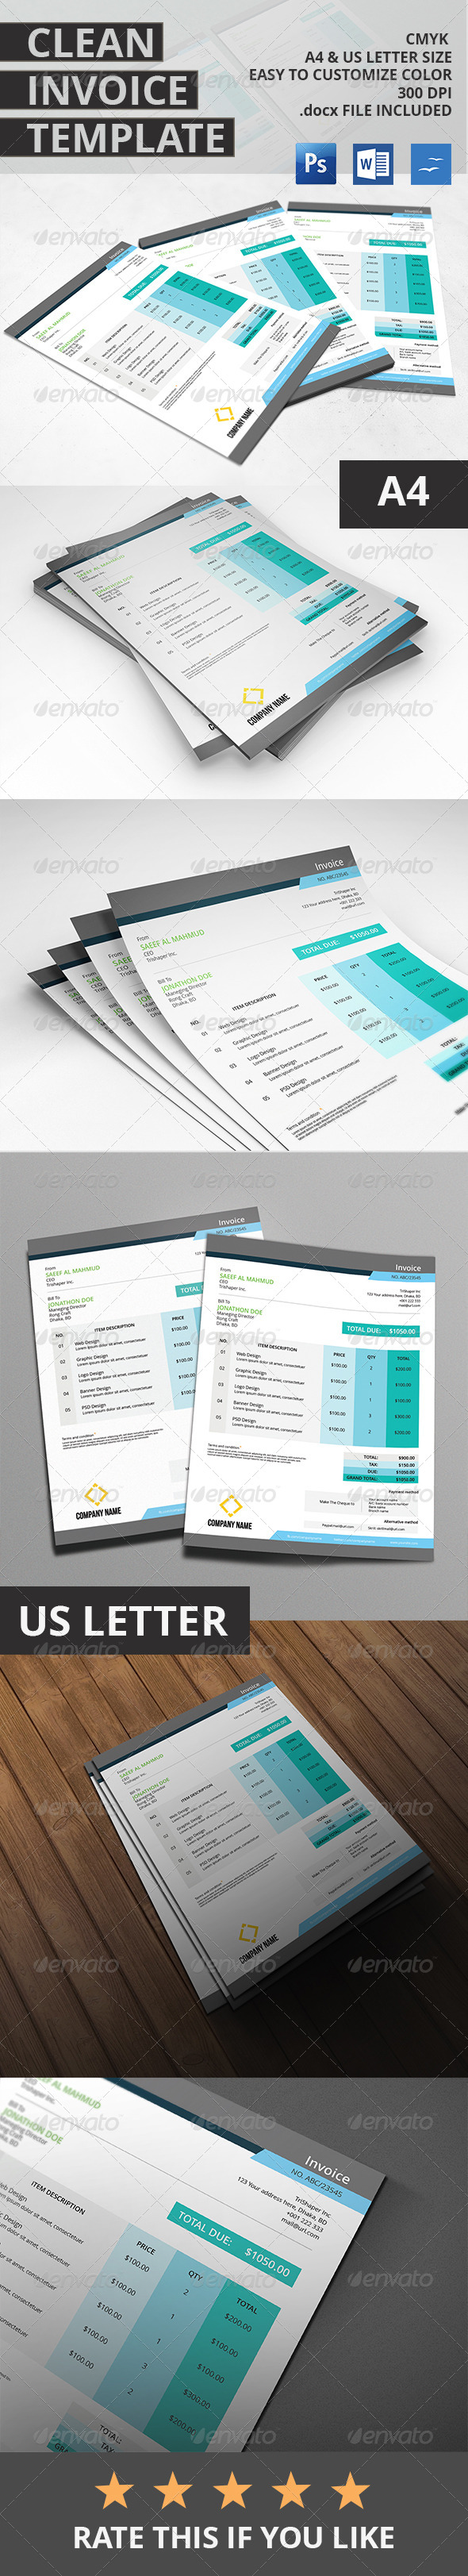 GraphicRiver Clean Invoice Template 7148551